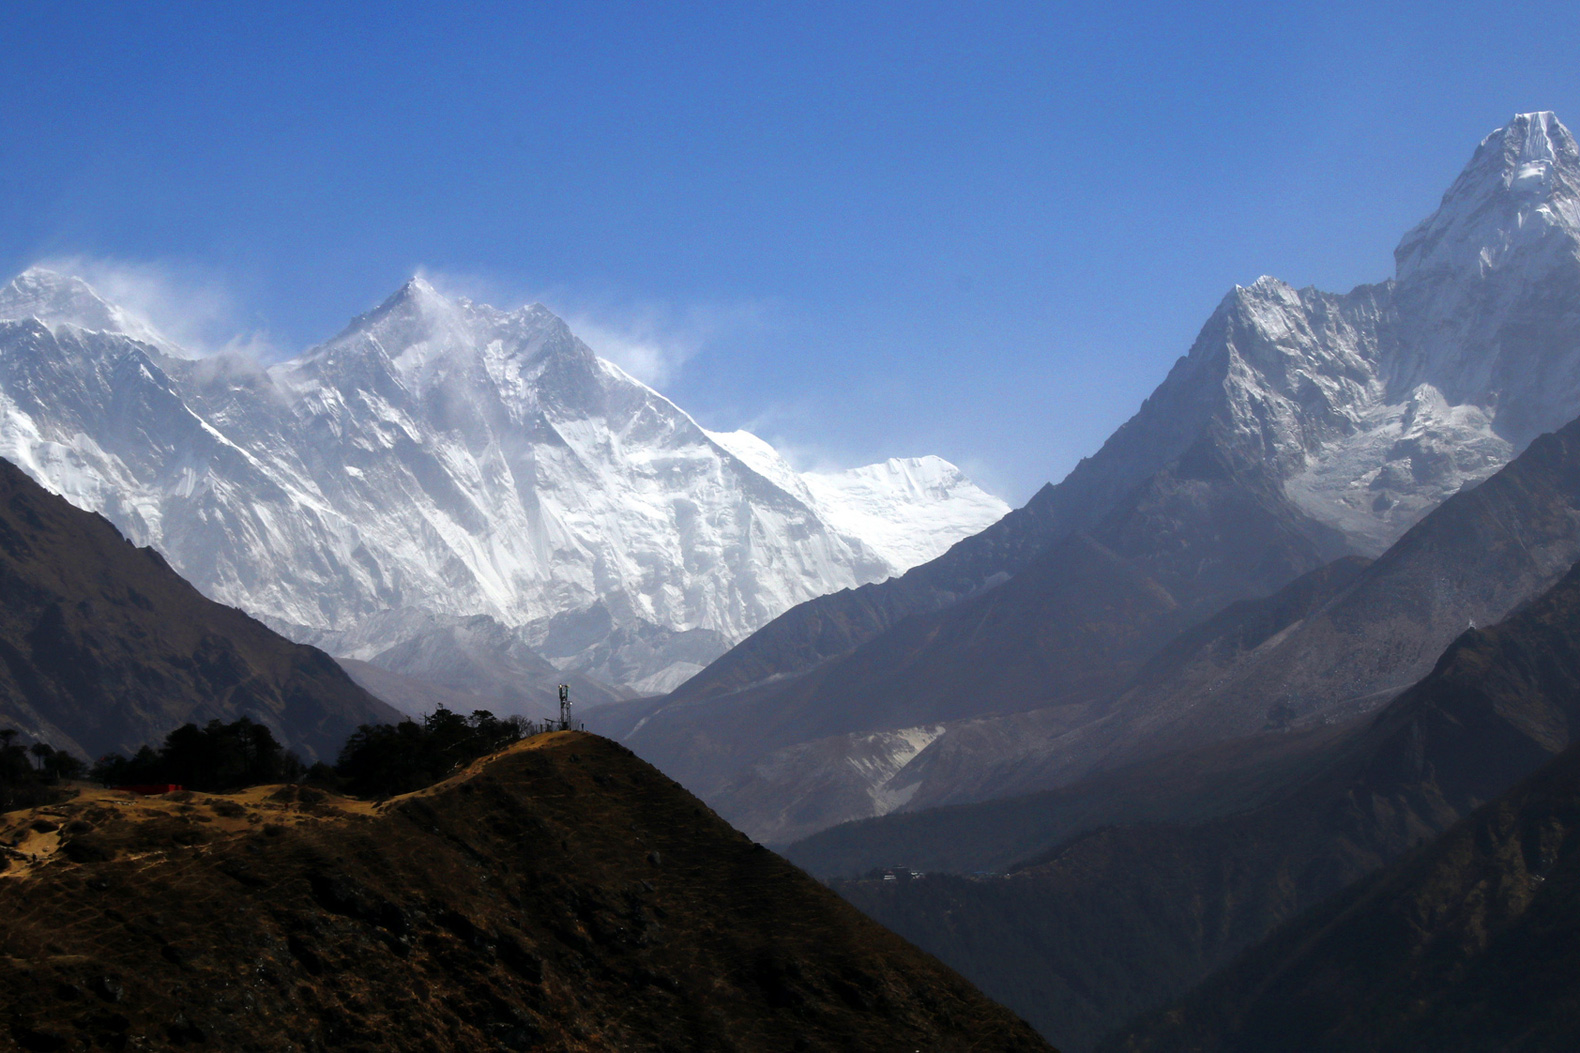 Mount Everest's melting glaciers expose the bodies of long-lost climbers